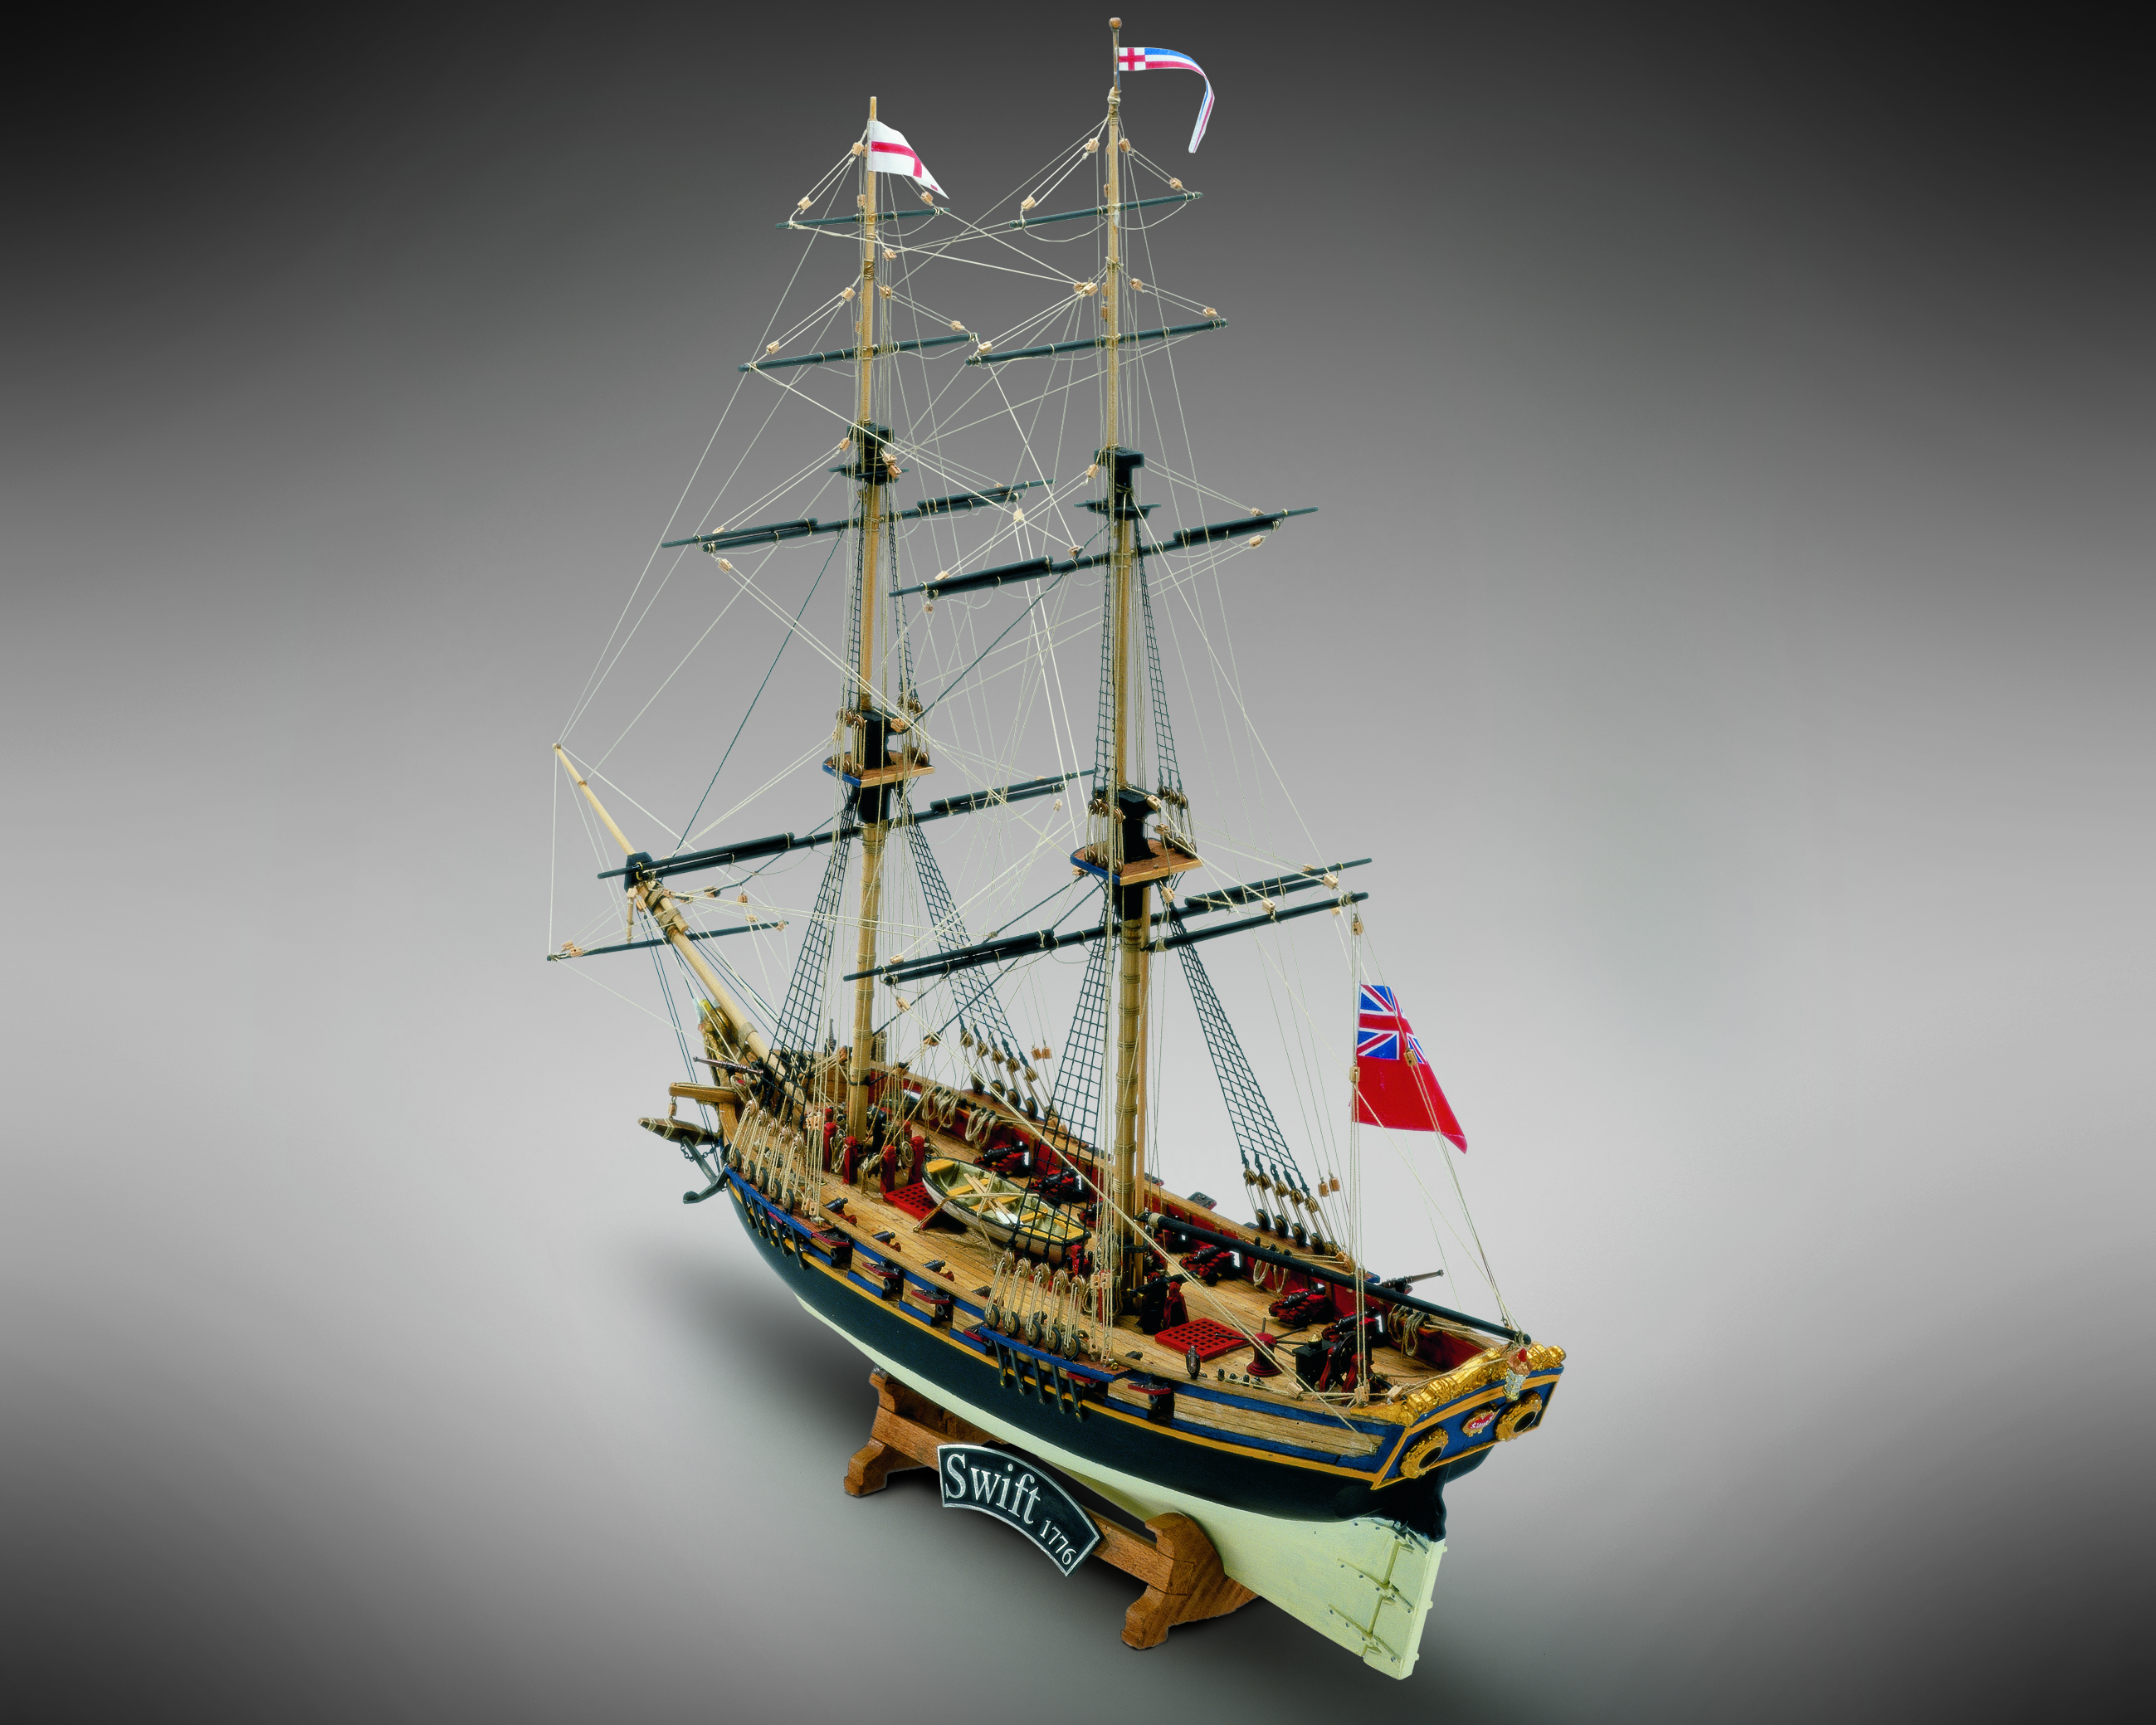 Mamoli Mv59 Hms Swift Wood Plank On Frame Ship Model Kit Length 421mm 17 Height 392mm 15 Scale 1 70